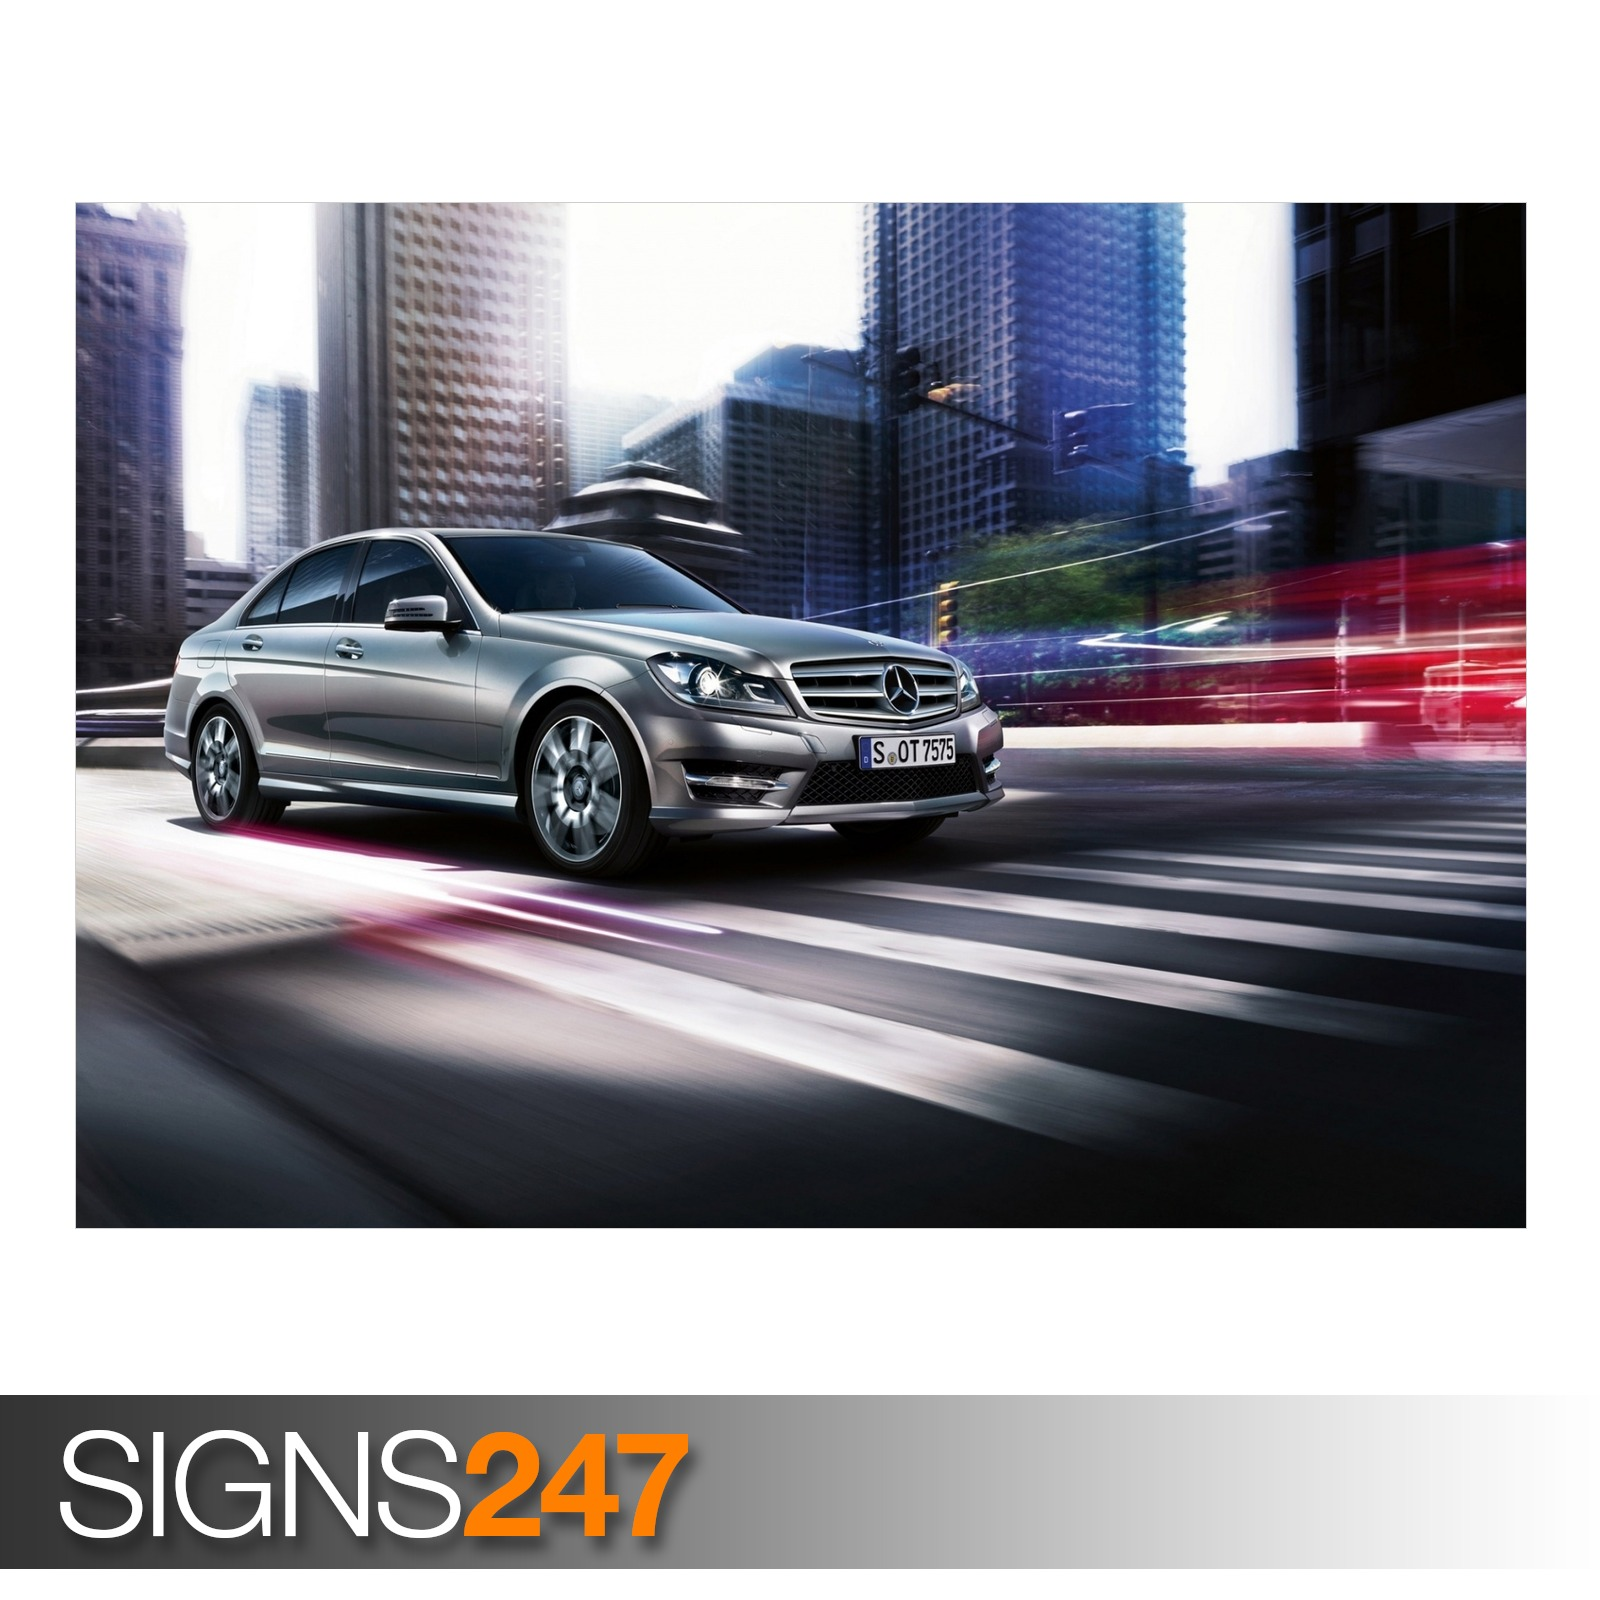 Mercedes benz c class aa748 car poster photo poster for Mercedes benz poster